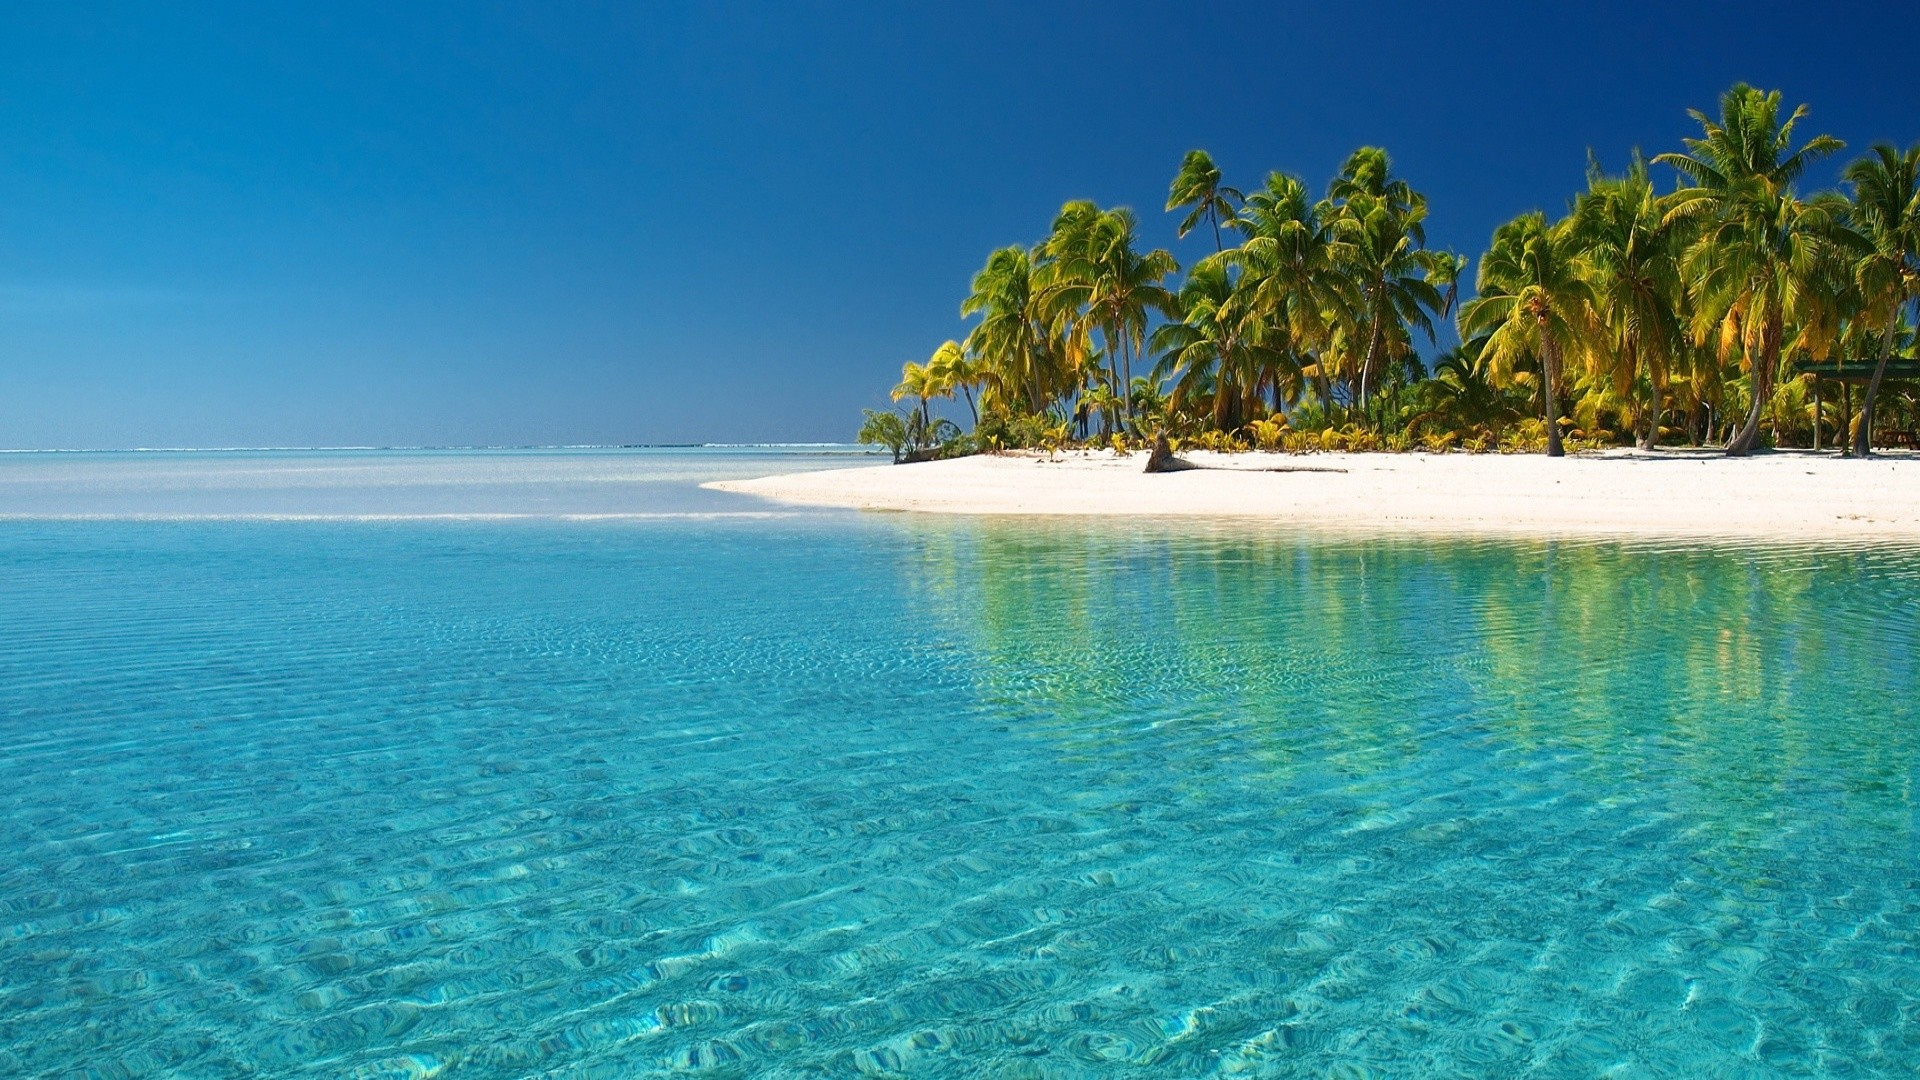 wallpapers | above is Crystal Clear Beach Wallpaper in Resolution  .